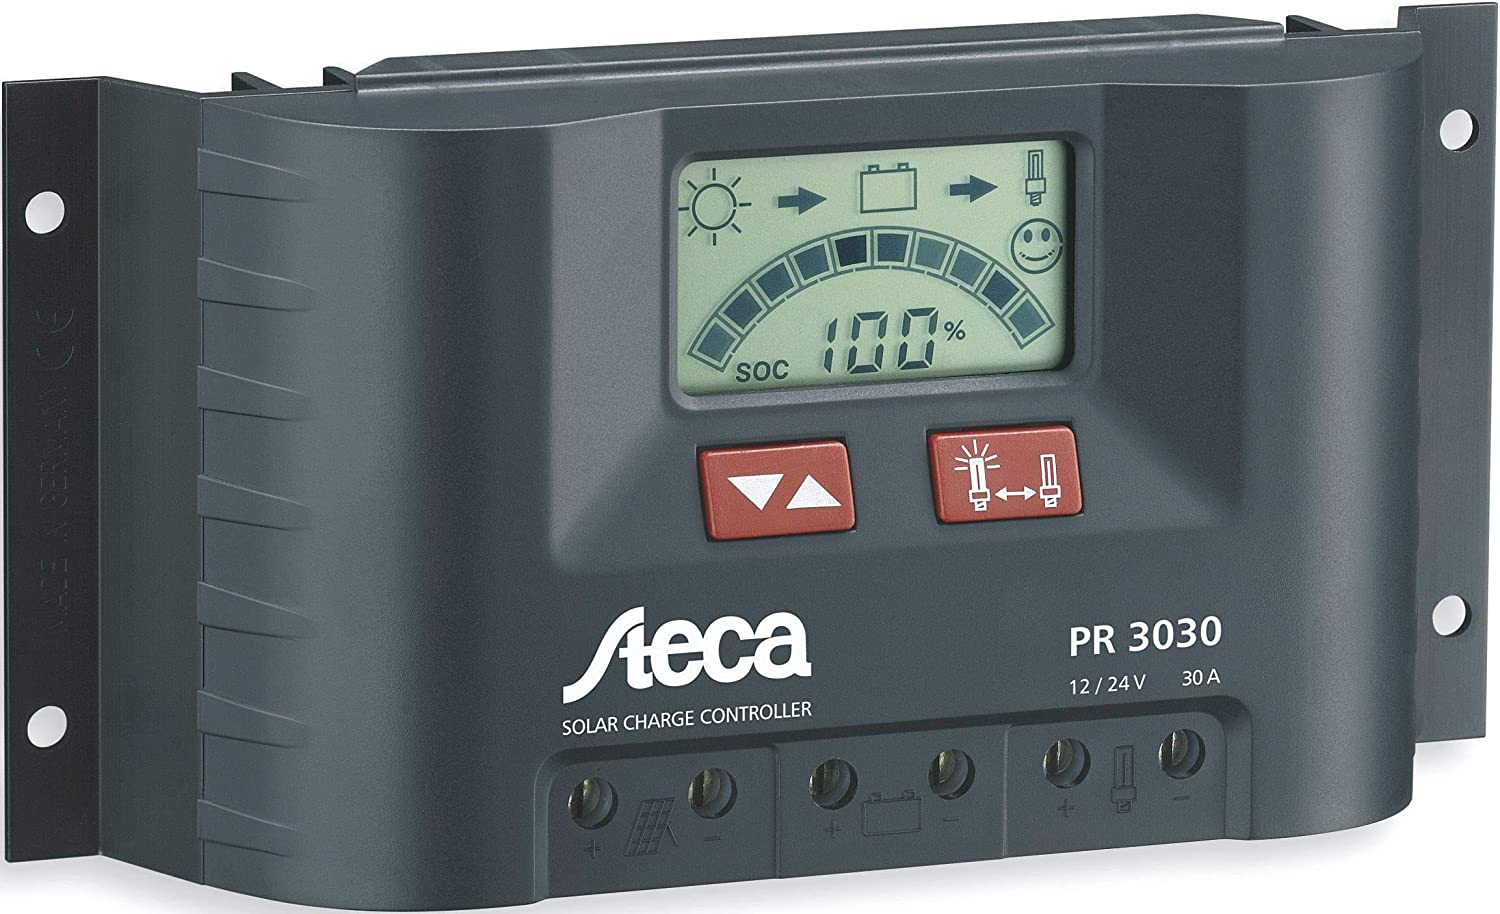 Steca Solar Panel Charge Controller/Regulator with LCD Display and Direct Output for 12  V Loads (Pack of 1), PR3030